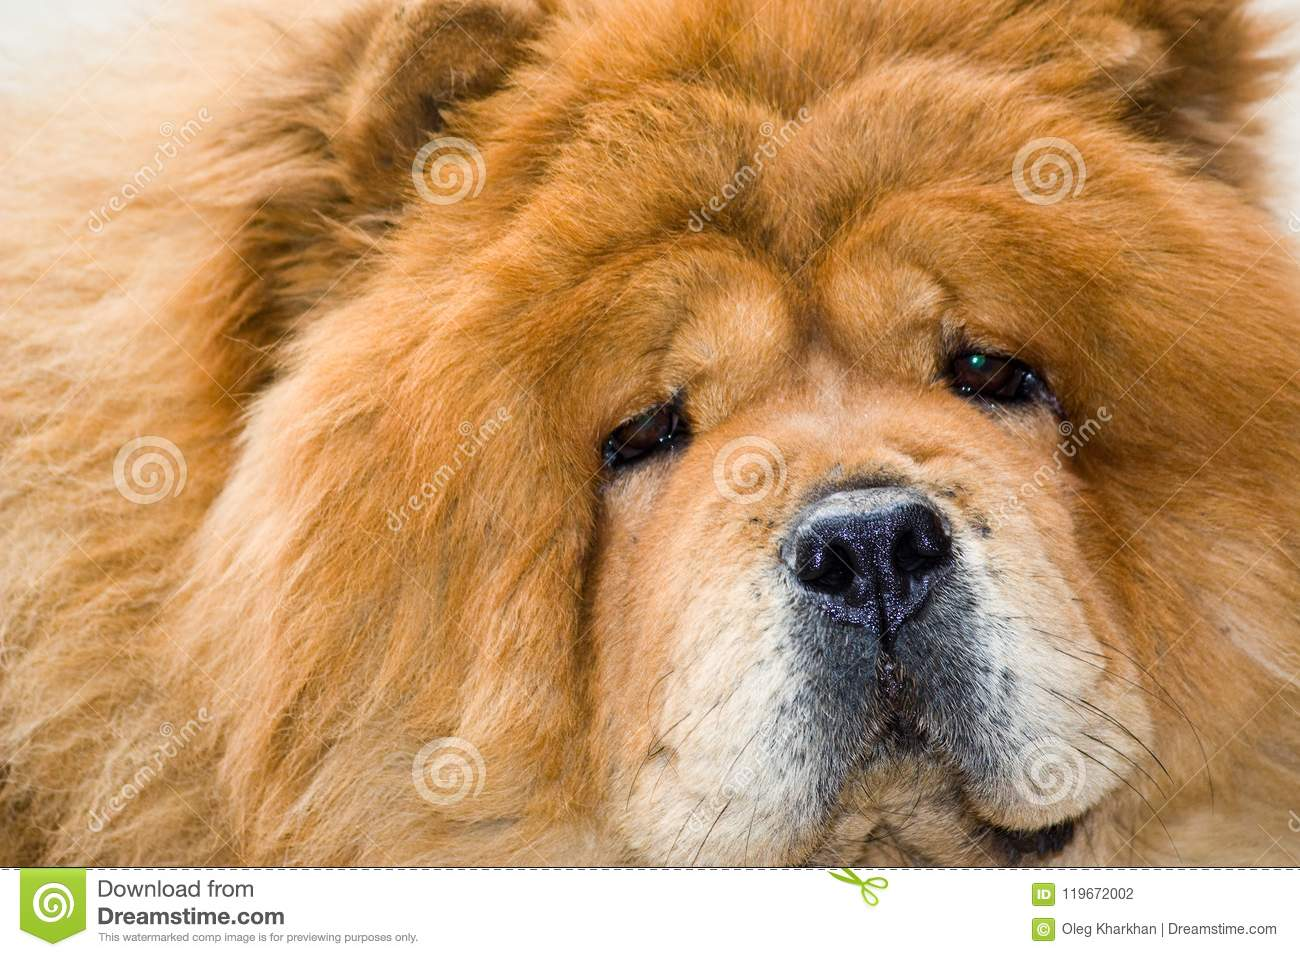 Portrait Of A Dog Breed Chow Chow Stock Photo Image Of Outdoor Head 119672002